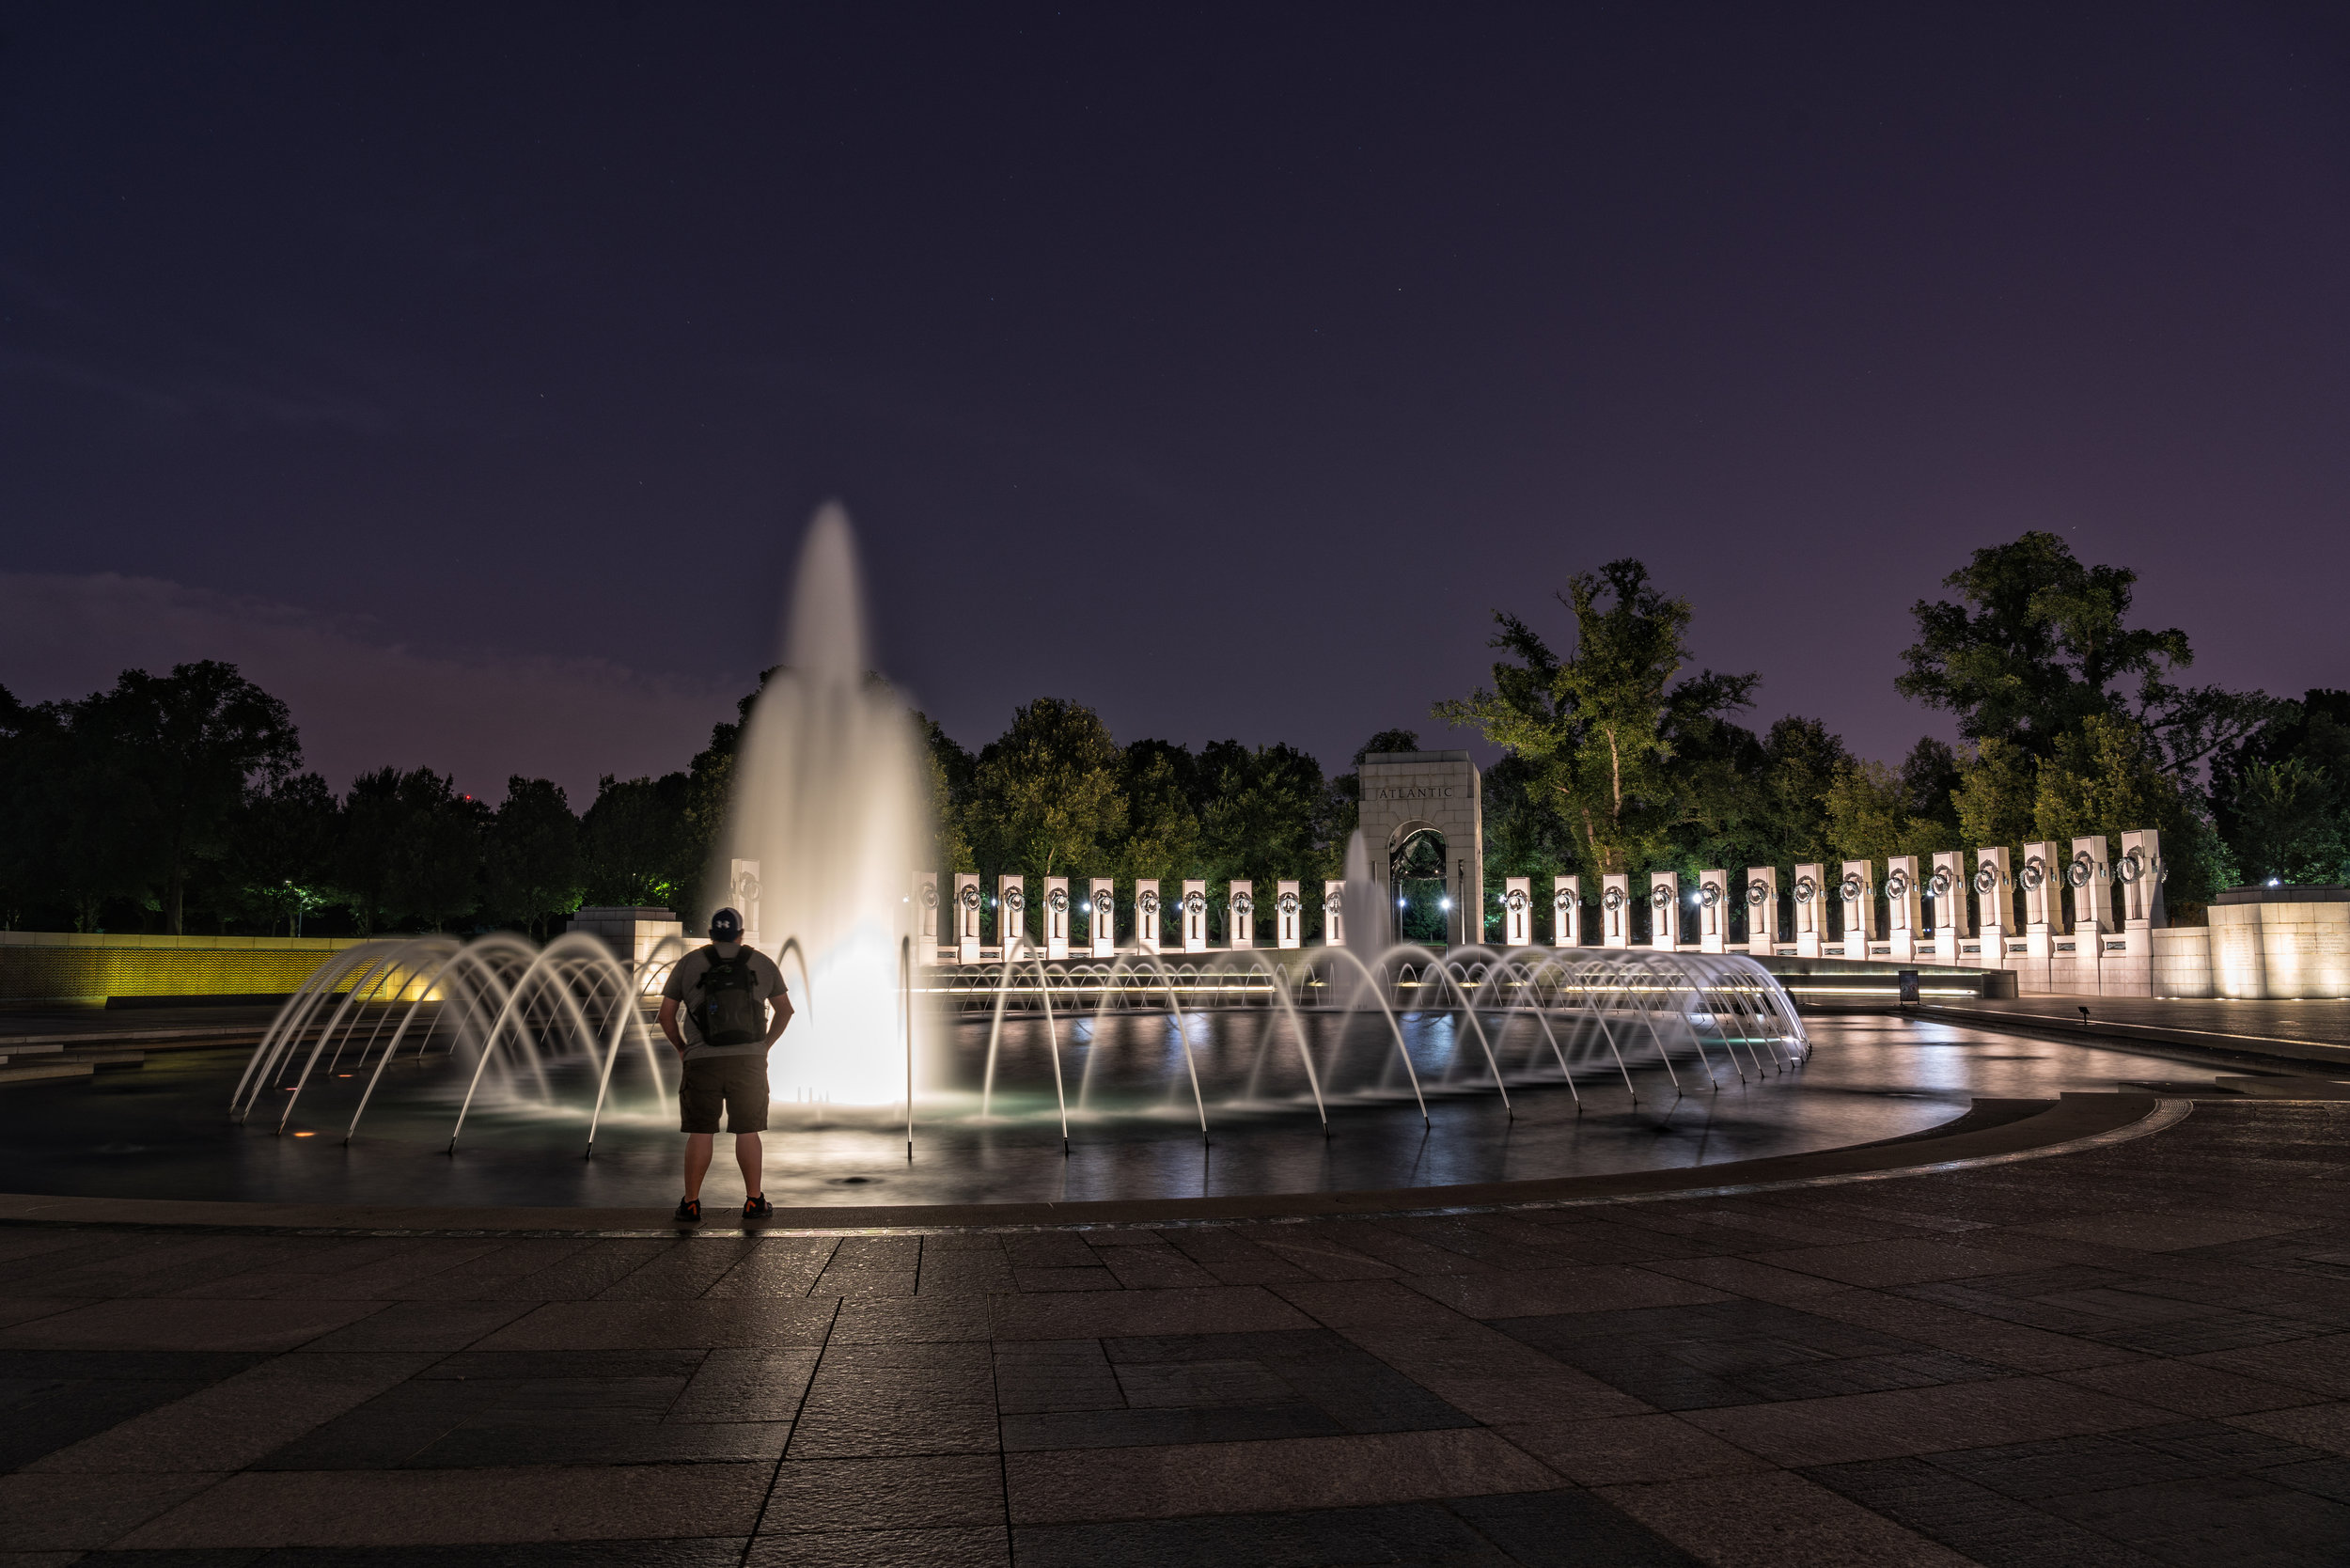 First attempt at the WWI Memorial - Needed to work on my framing - 30 second exposure